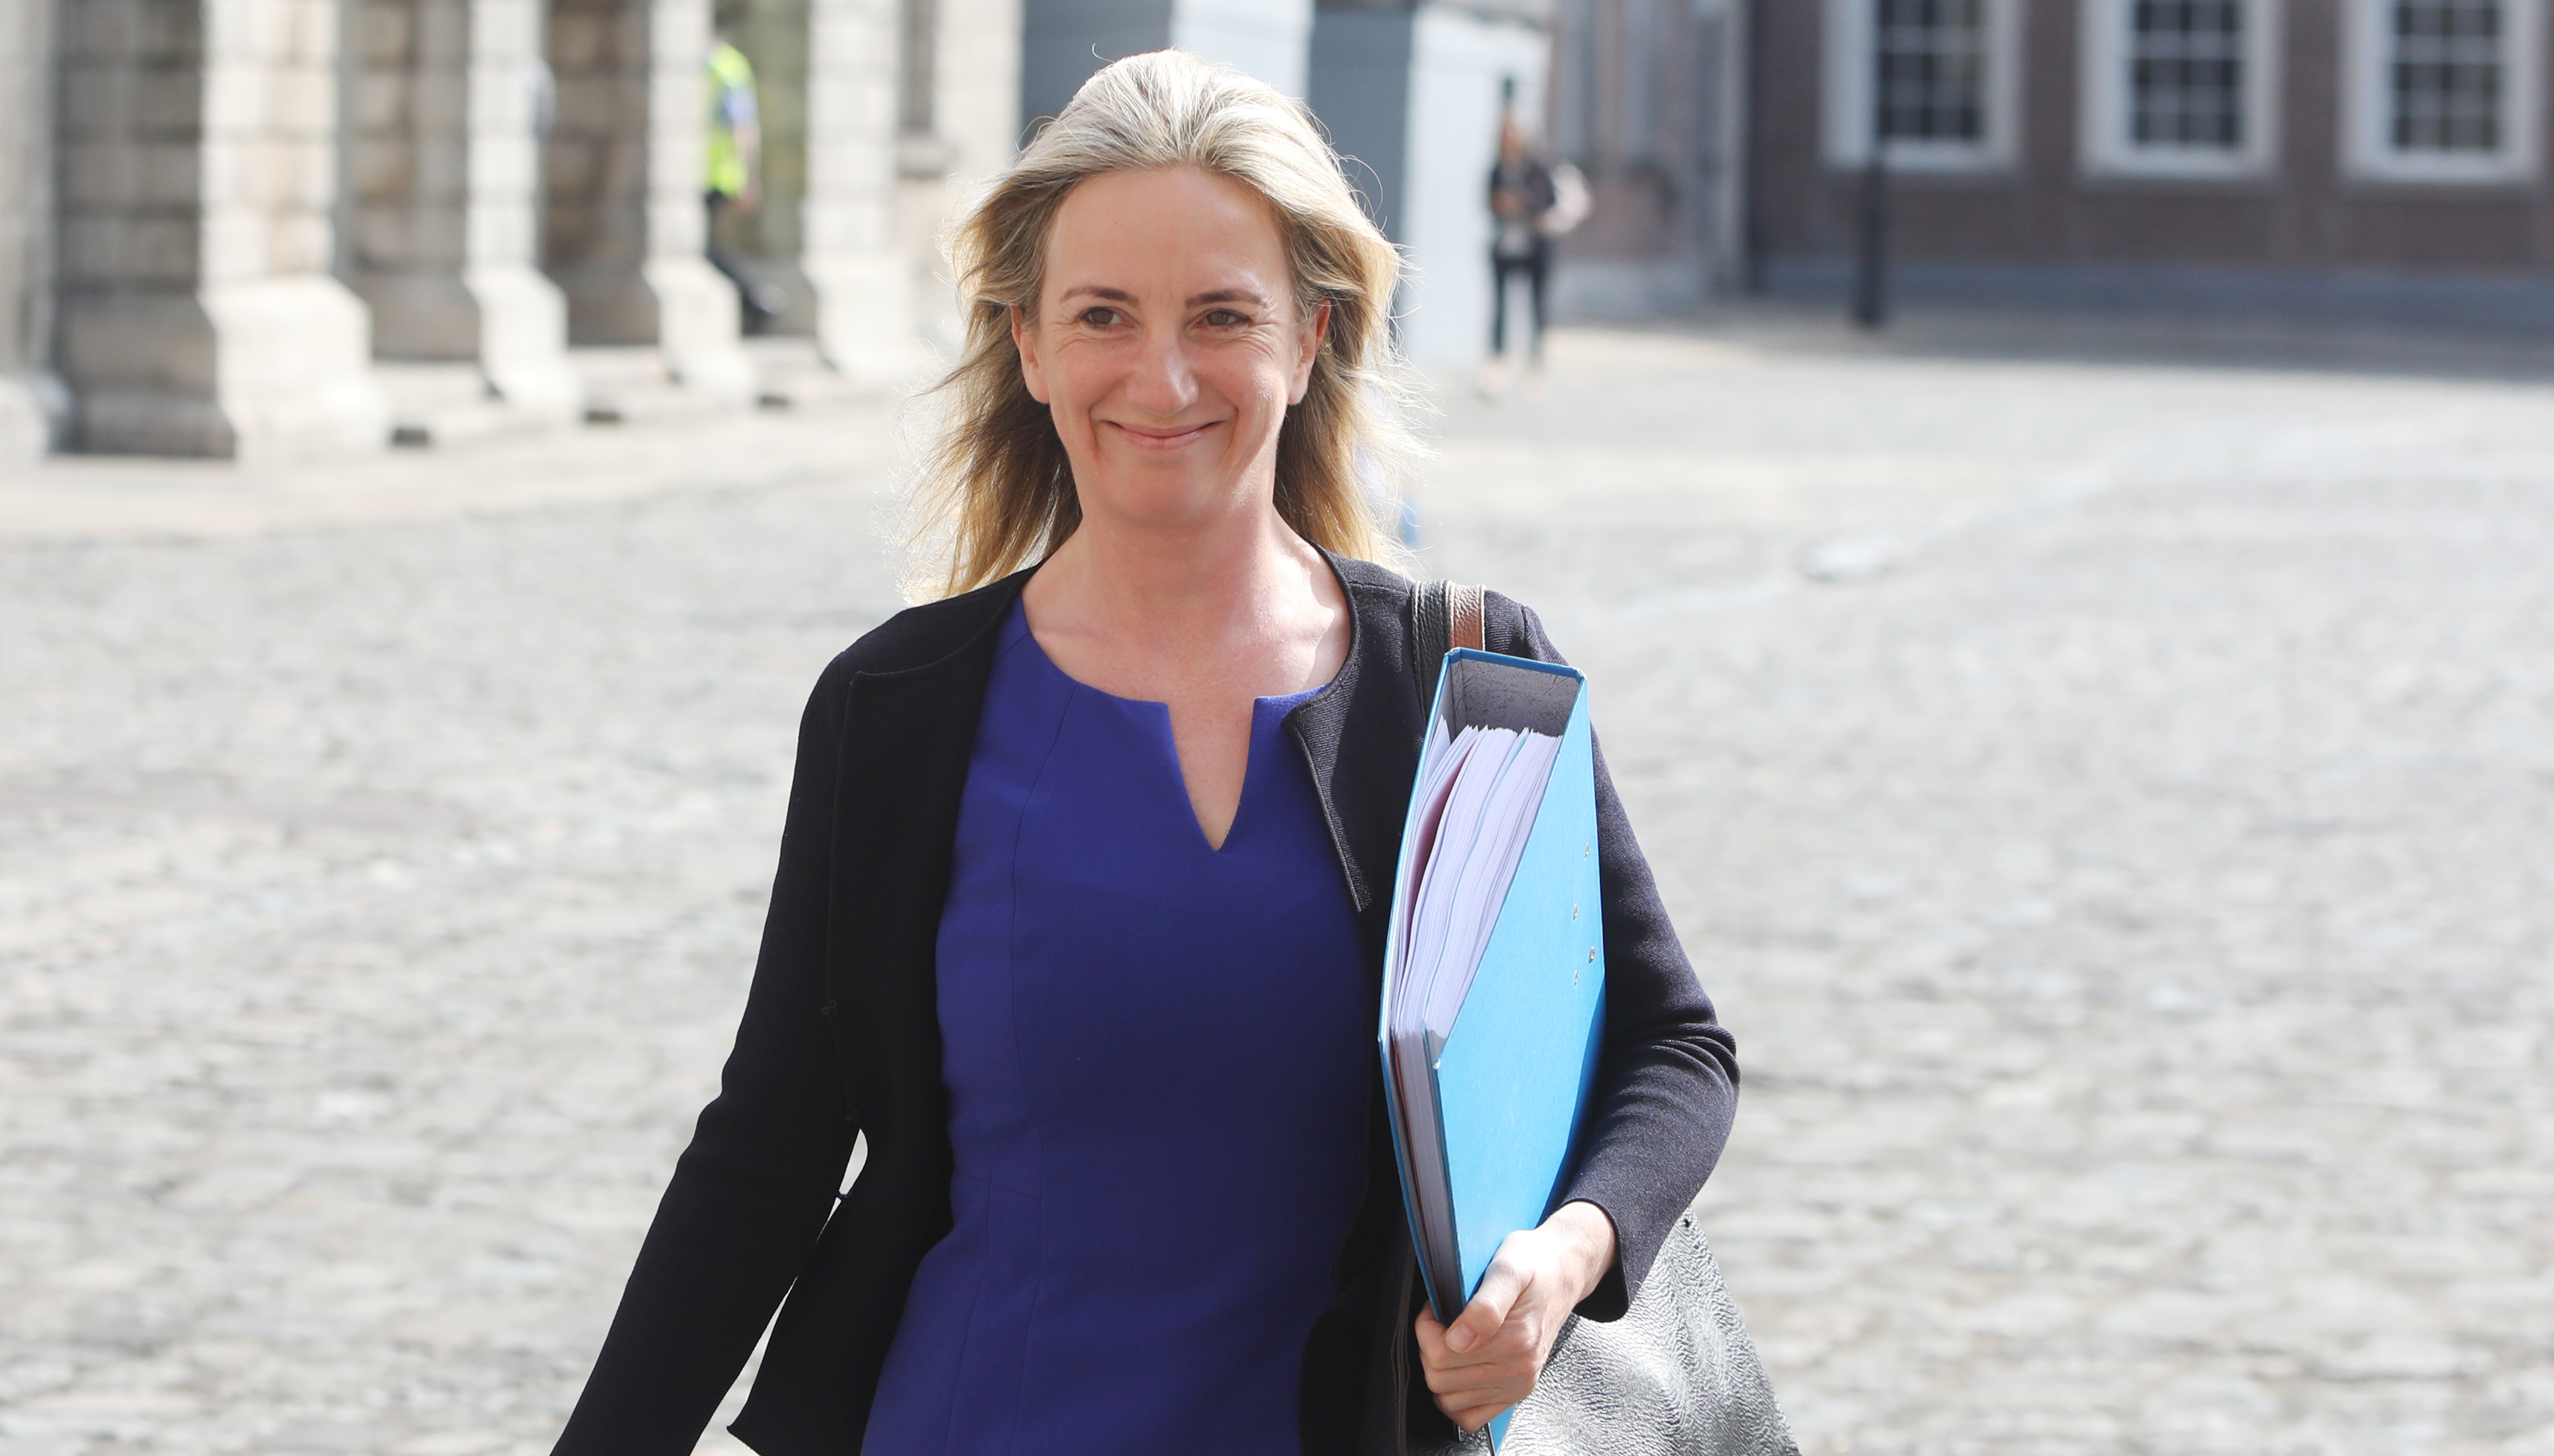 Make me president to end corruption, says journalist Gemma O'Doherty   Ireland   The Times